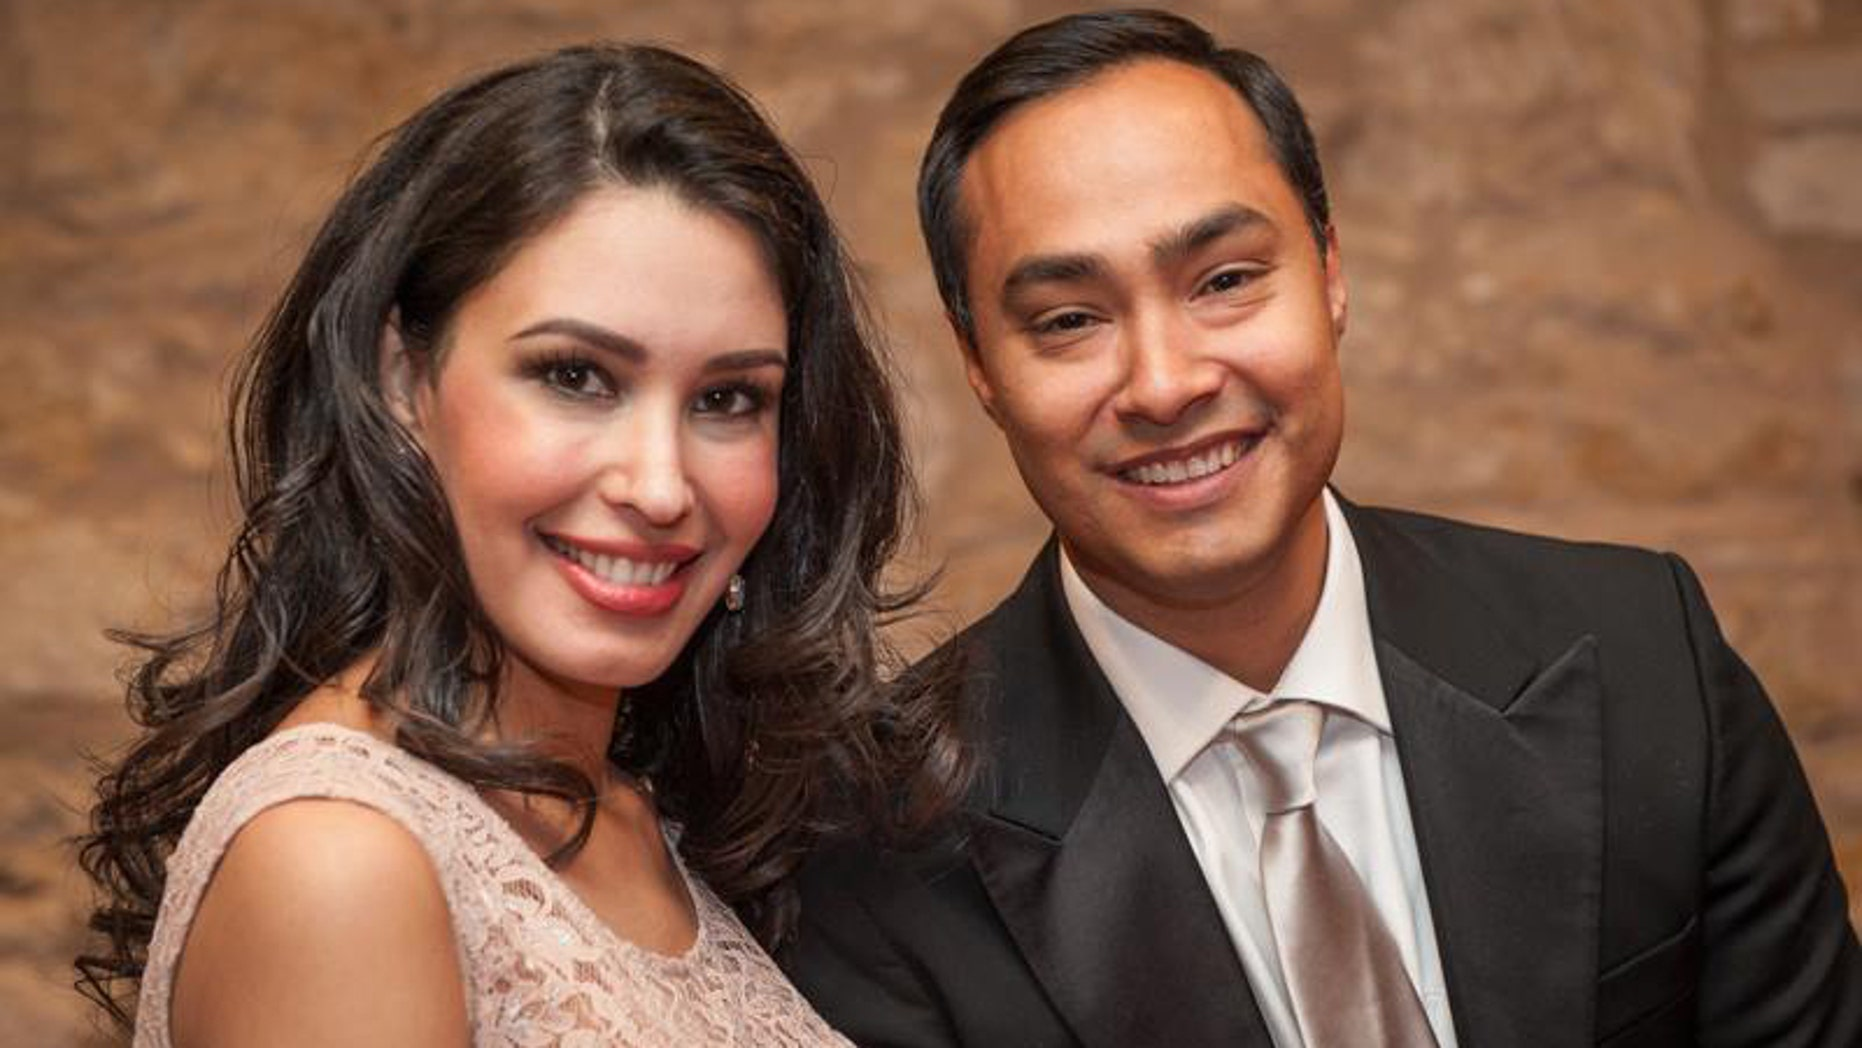 U.S. Rep. Joaquin Castro and his wife, Anna Flores